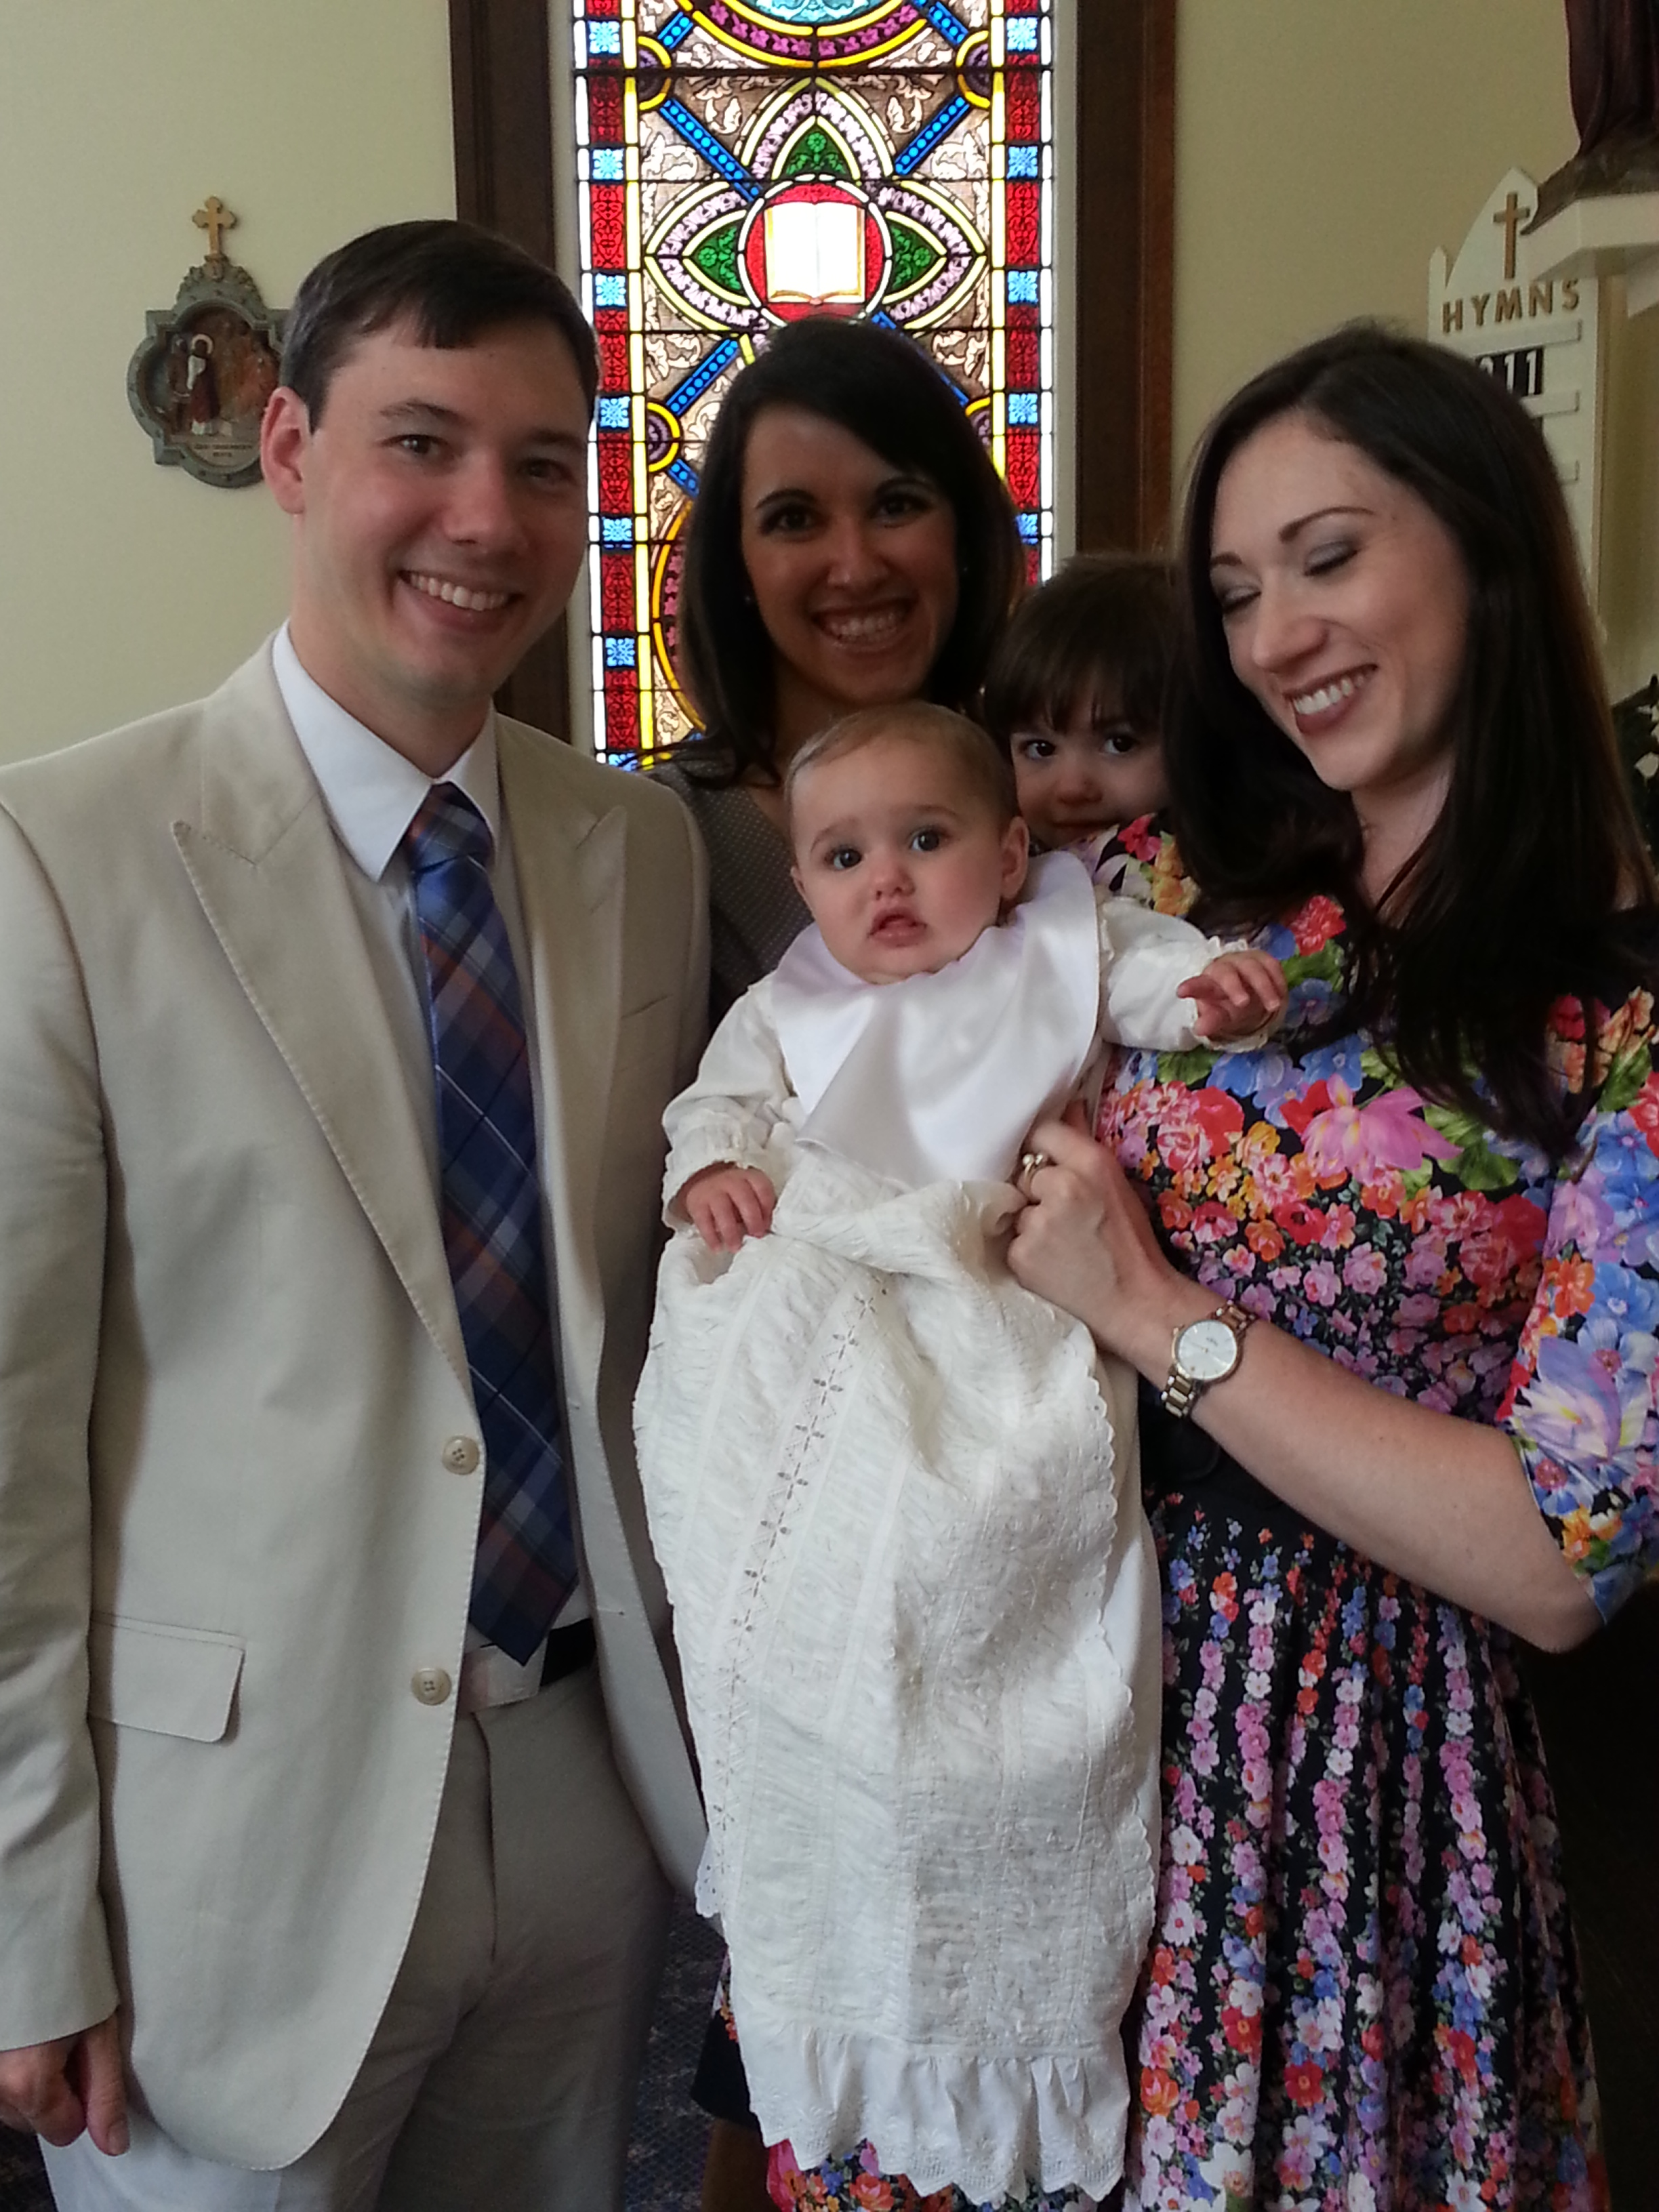 The Baptismal Gown as Old as America – Catholic Diocese of Arlington